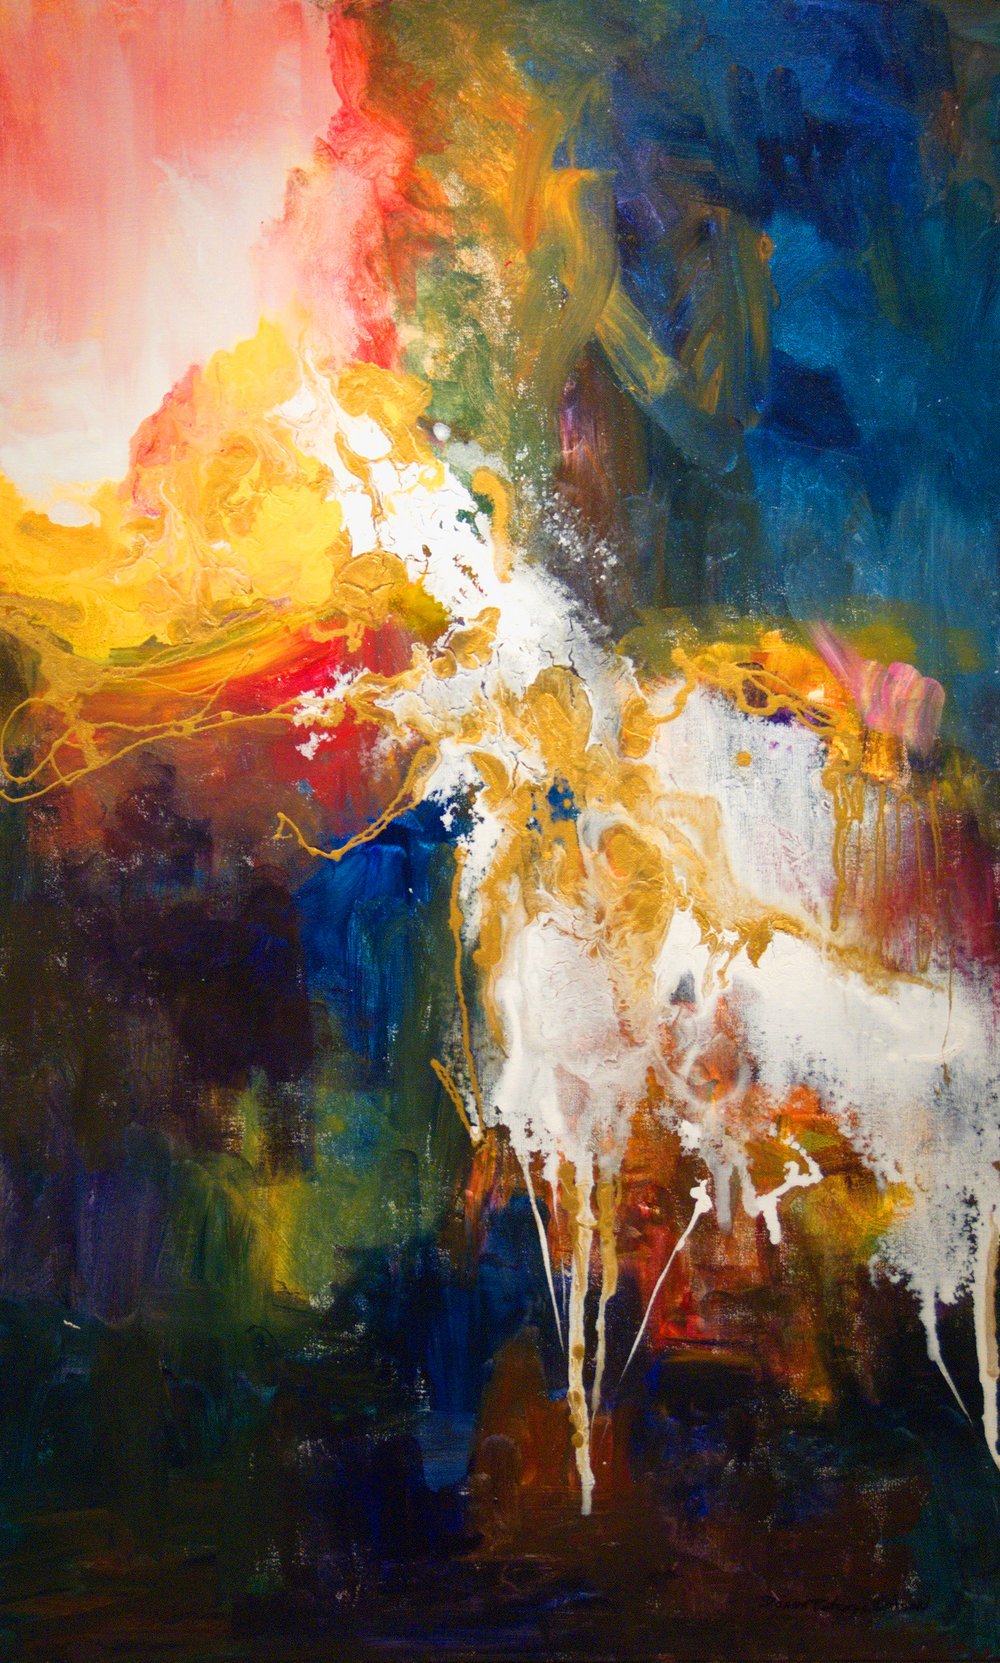 Donna Petcoff Watson,  Untitled , Acrylic on Canvas, 48 x 30 1/8 inches, Courtesy of Donna Petcoff Watson Gallery and Platform Art Forum for Creativity.